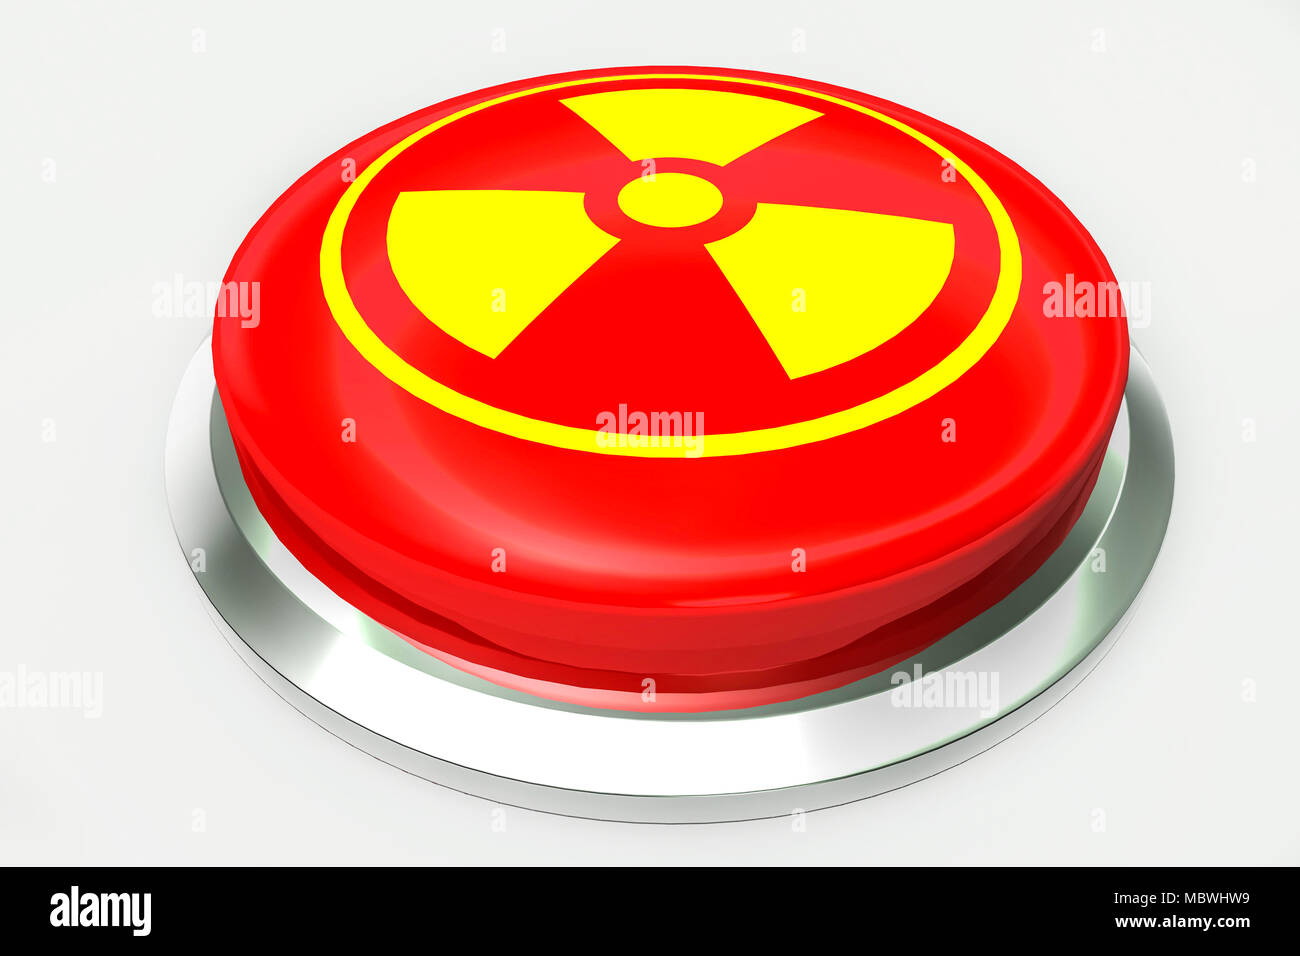 Red nuclear alert button and sign for danger isolated on white background. 3D illustration - Stock Image